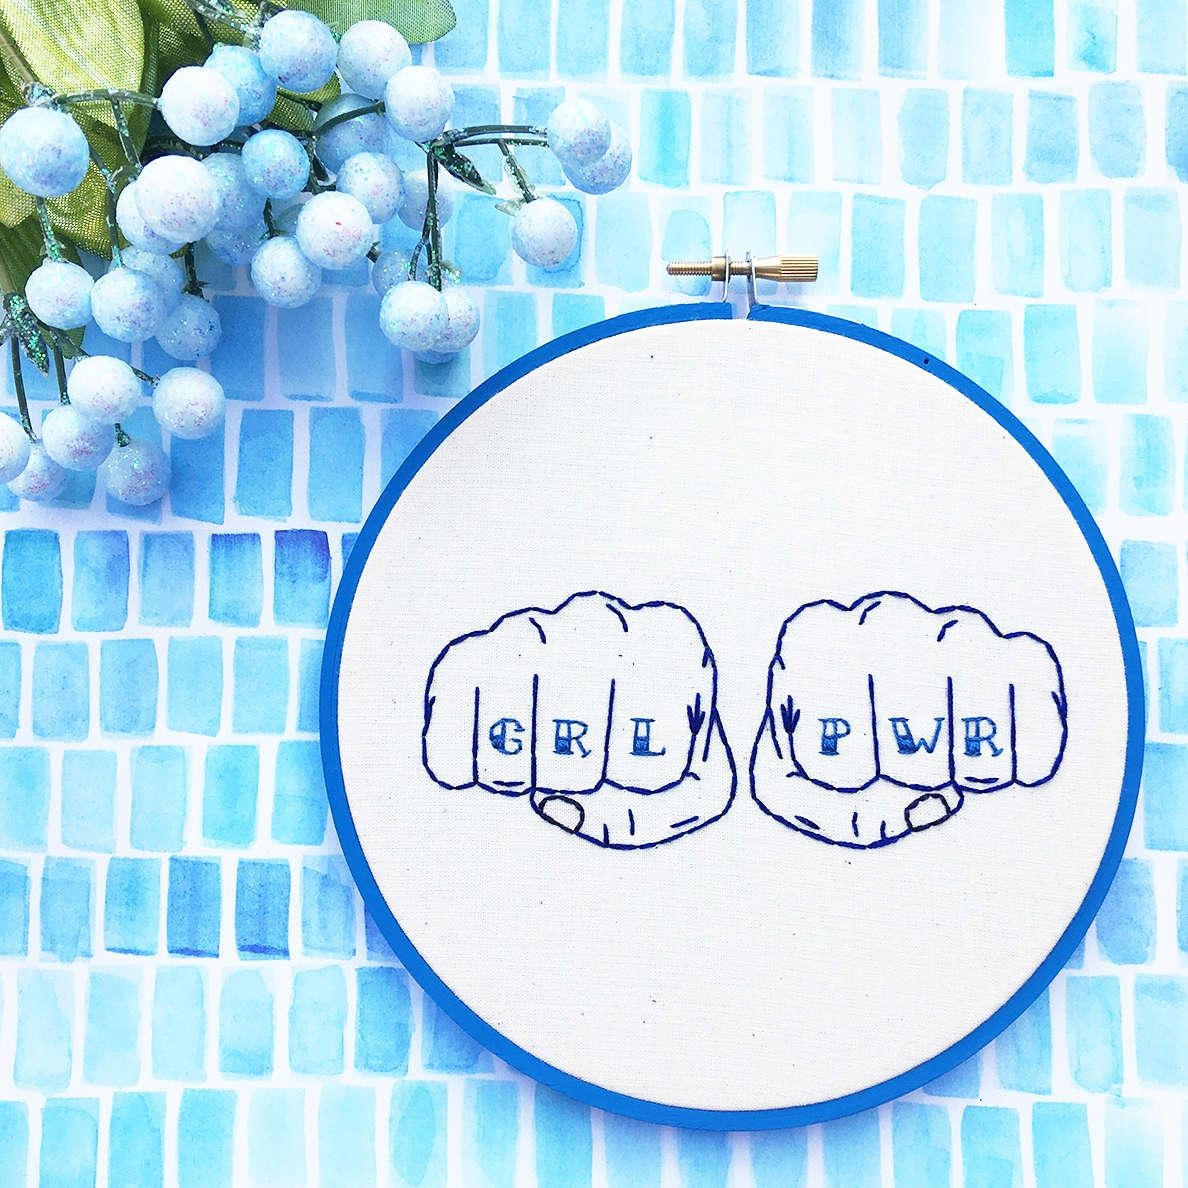 Grl Pwr Blue Hand Embroidery Feminist Wall Art Embroidery For Feminist Wall Art (View 12 of 20)